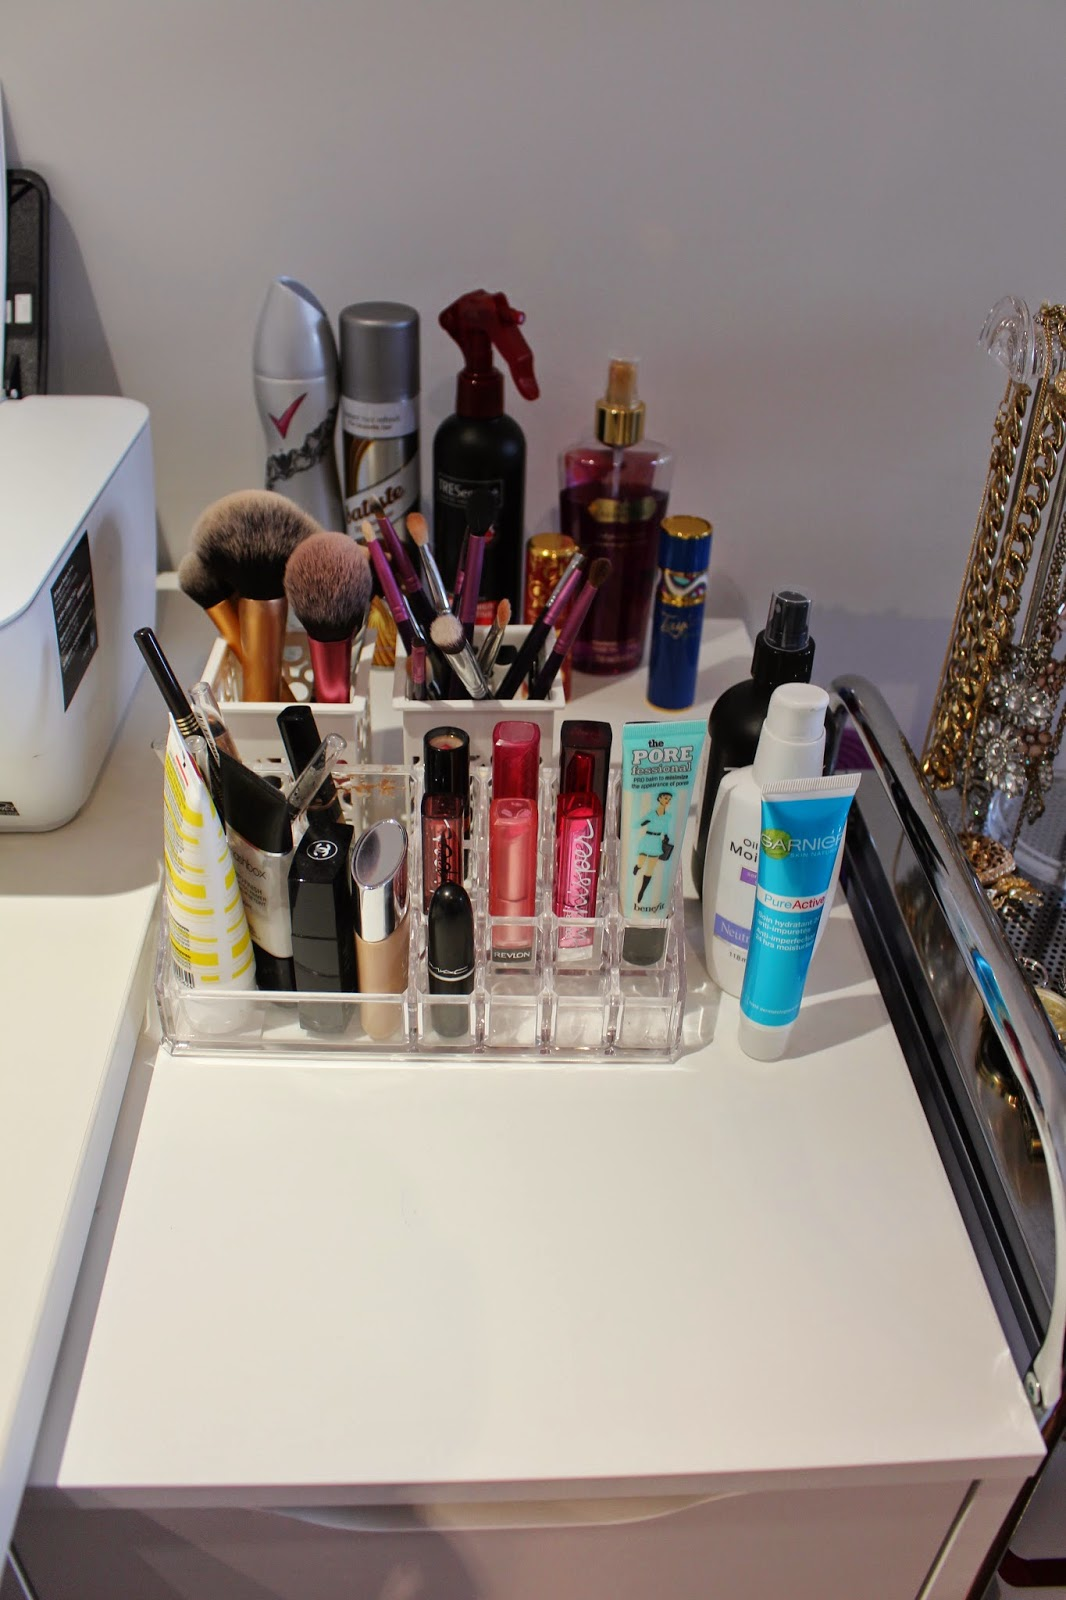 makeup storage, jewellery storage, jewelery storage, beauty storage, small space storage, makeup and jewellery small space storage, howards storage world, kmart, ikea alex 5 drawer, makeup storage container australia, makeup storage australia